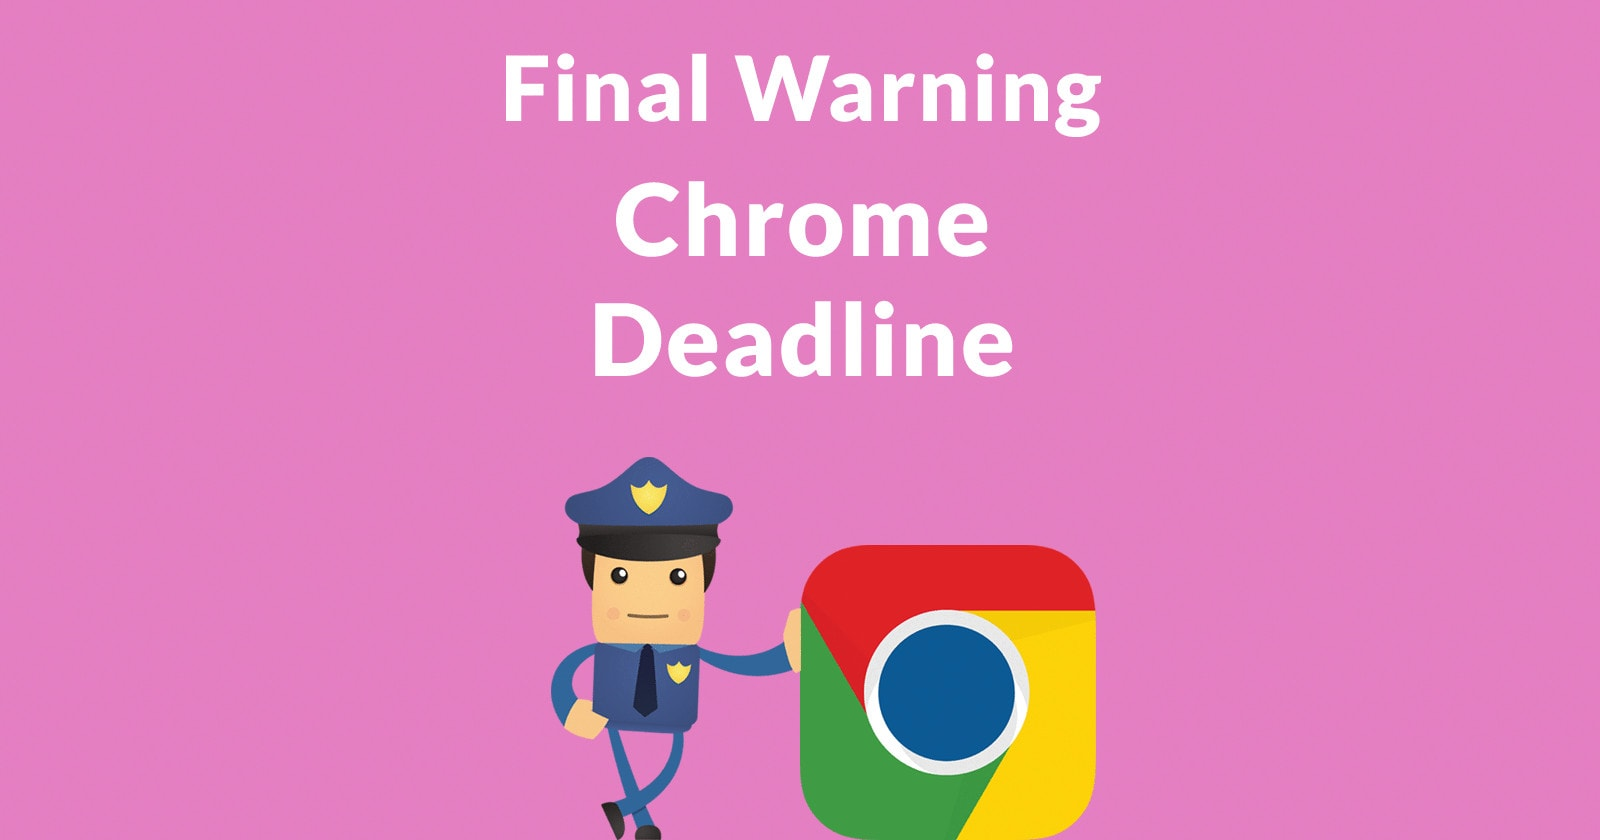 Google Chrome Issues Final Warning on HTTPS - Search Engine